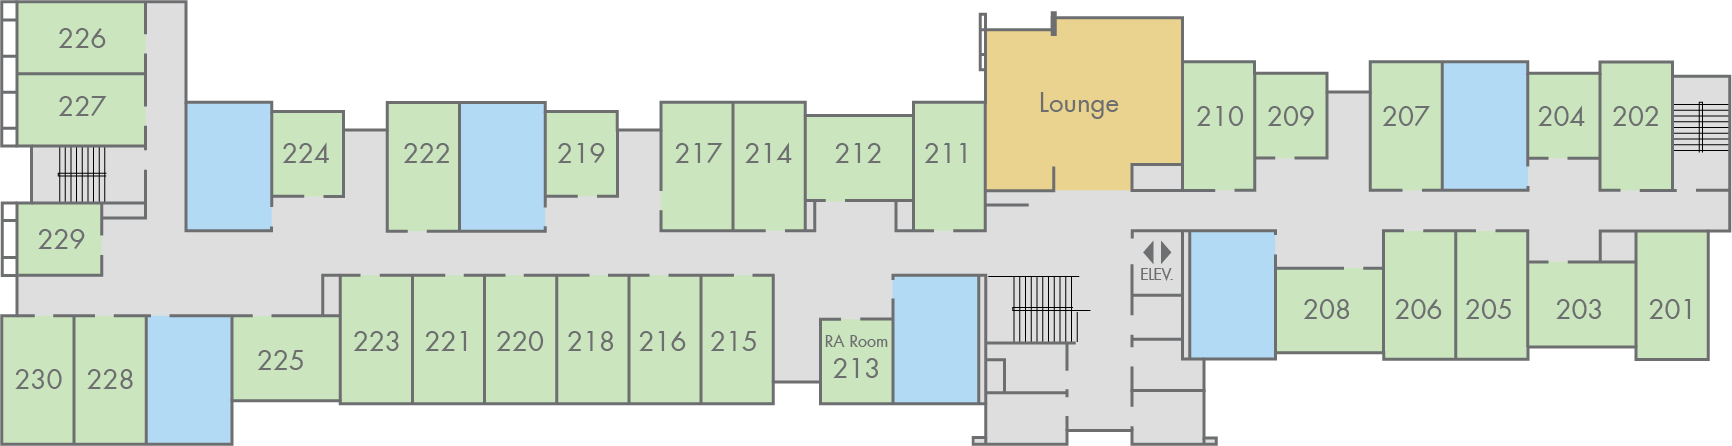 Floor Plan: Madrone Hall, Second Floor